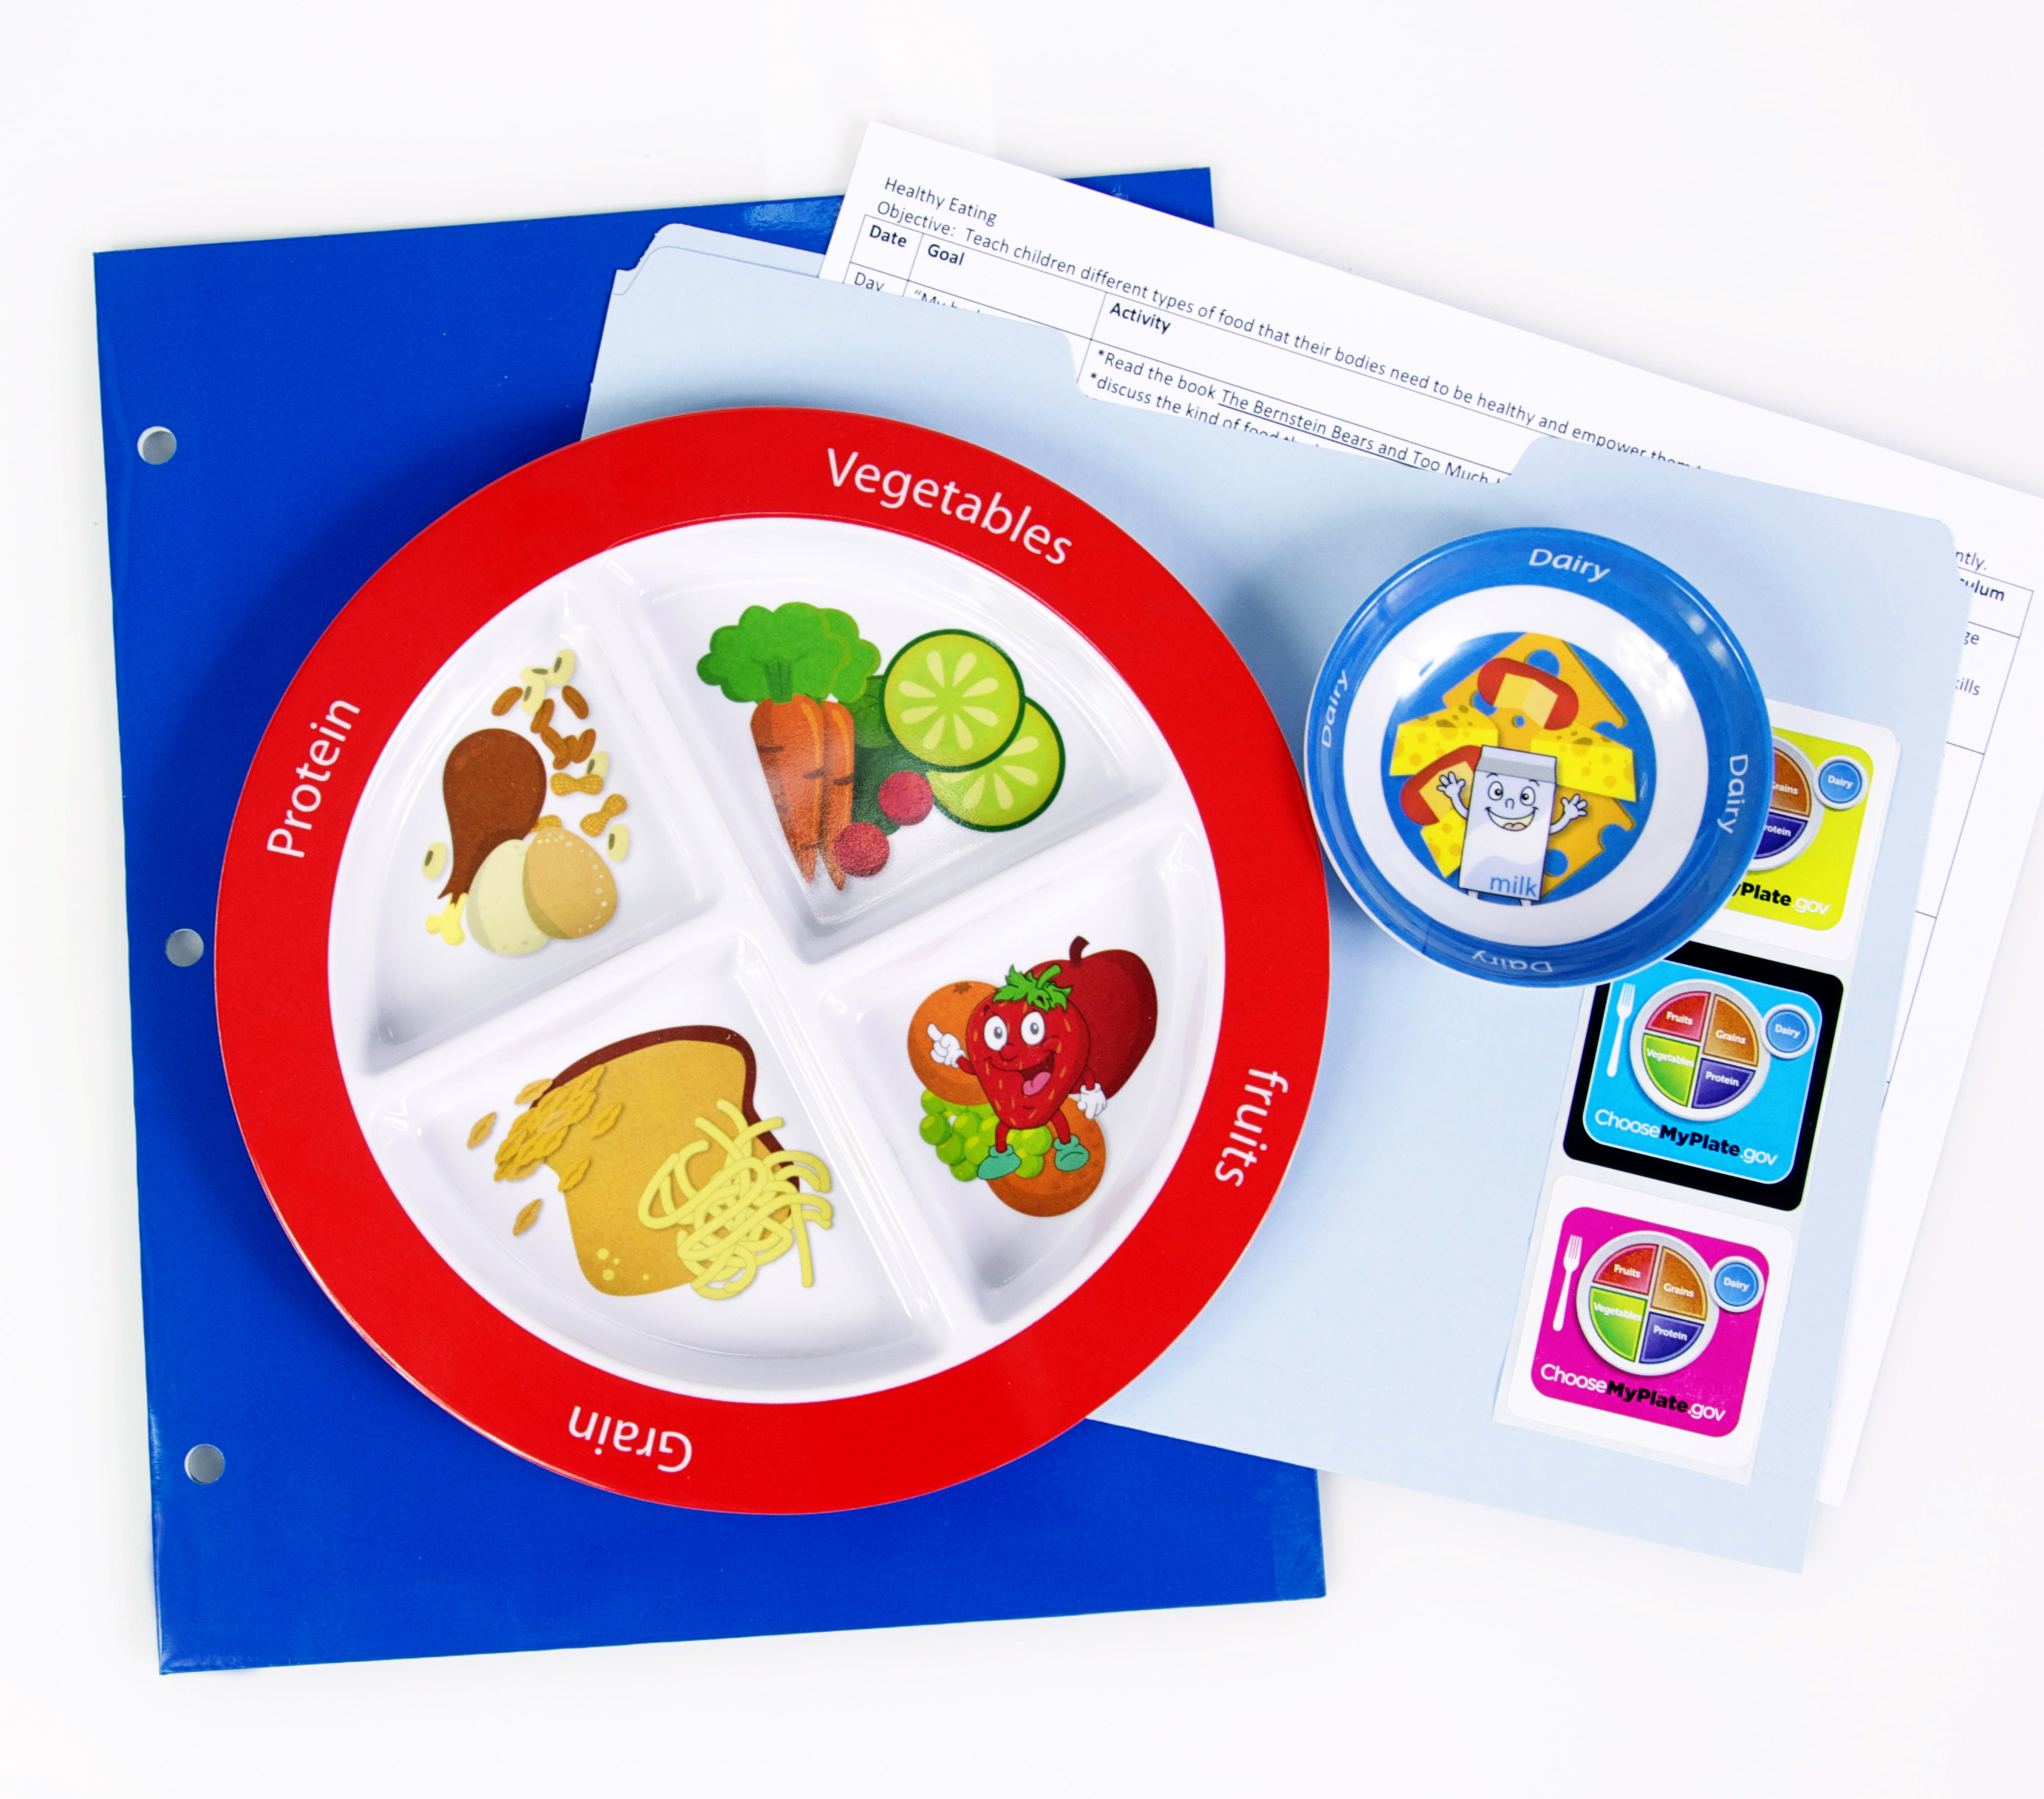 Bad Planen Programm Nutrition Lesson Plans And Tools For Teaching Healthy